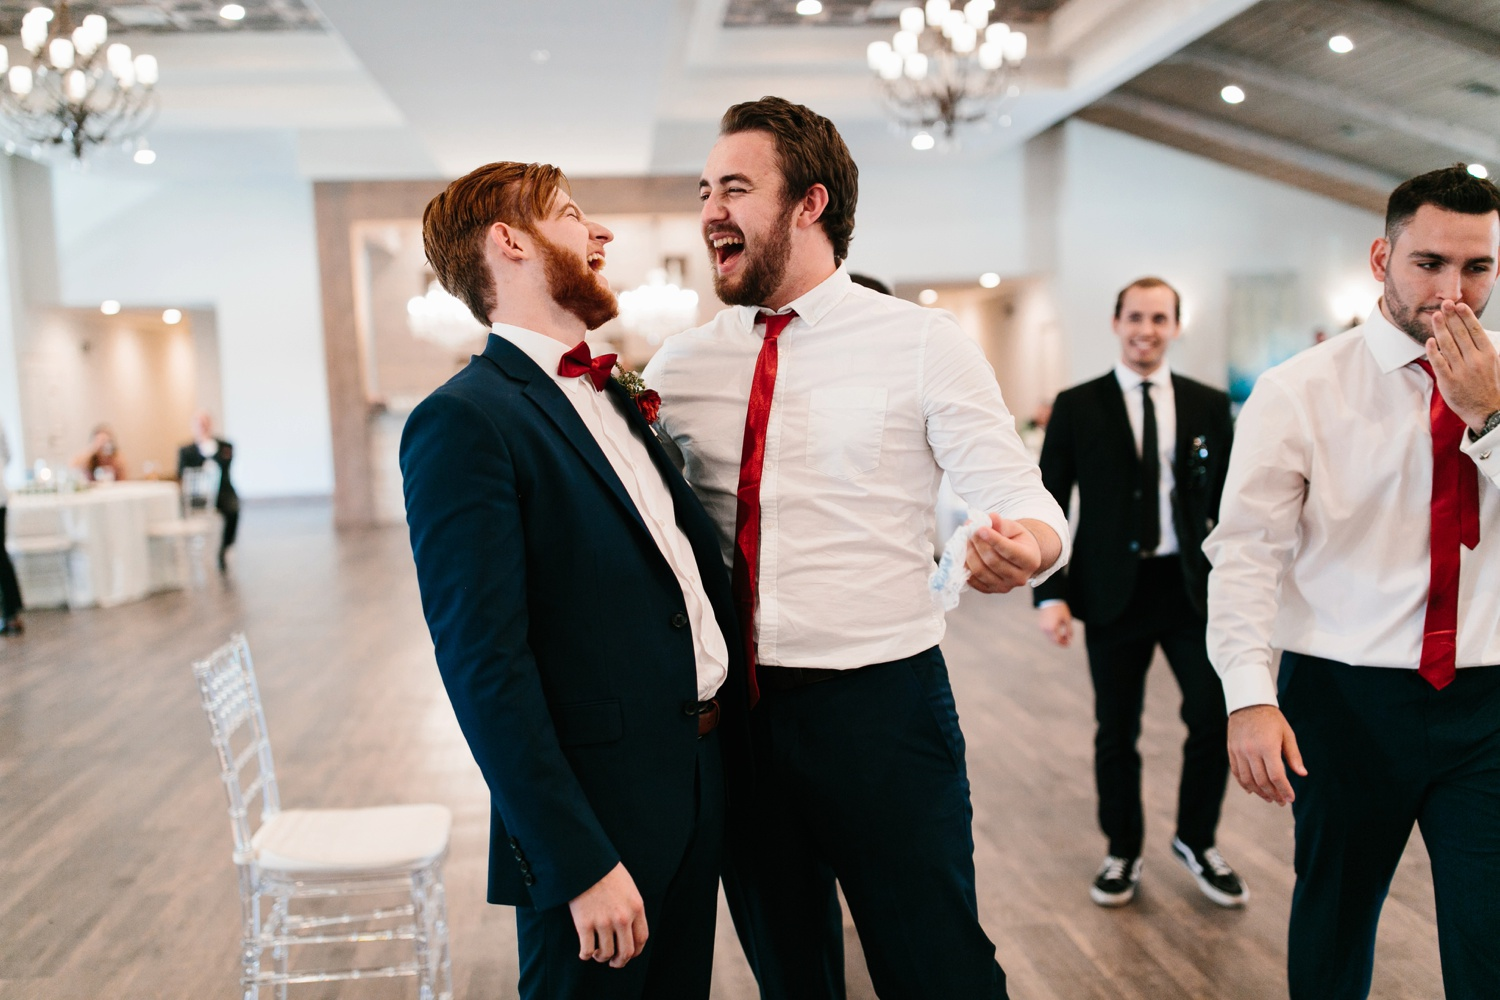 Grant + Lysette | a vibrant, deep burgundy and navy, and mixed metals wedding at Hidden Pines Chapel by North Texas Wedding Photographer Rachel Meagan Photography 175